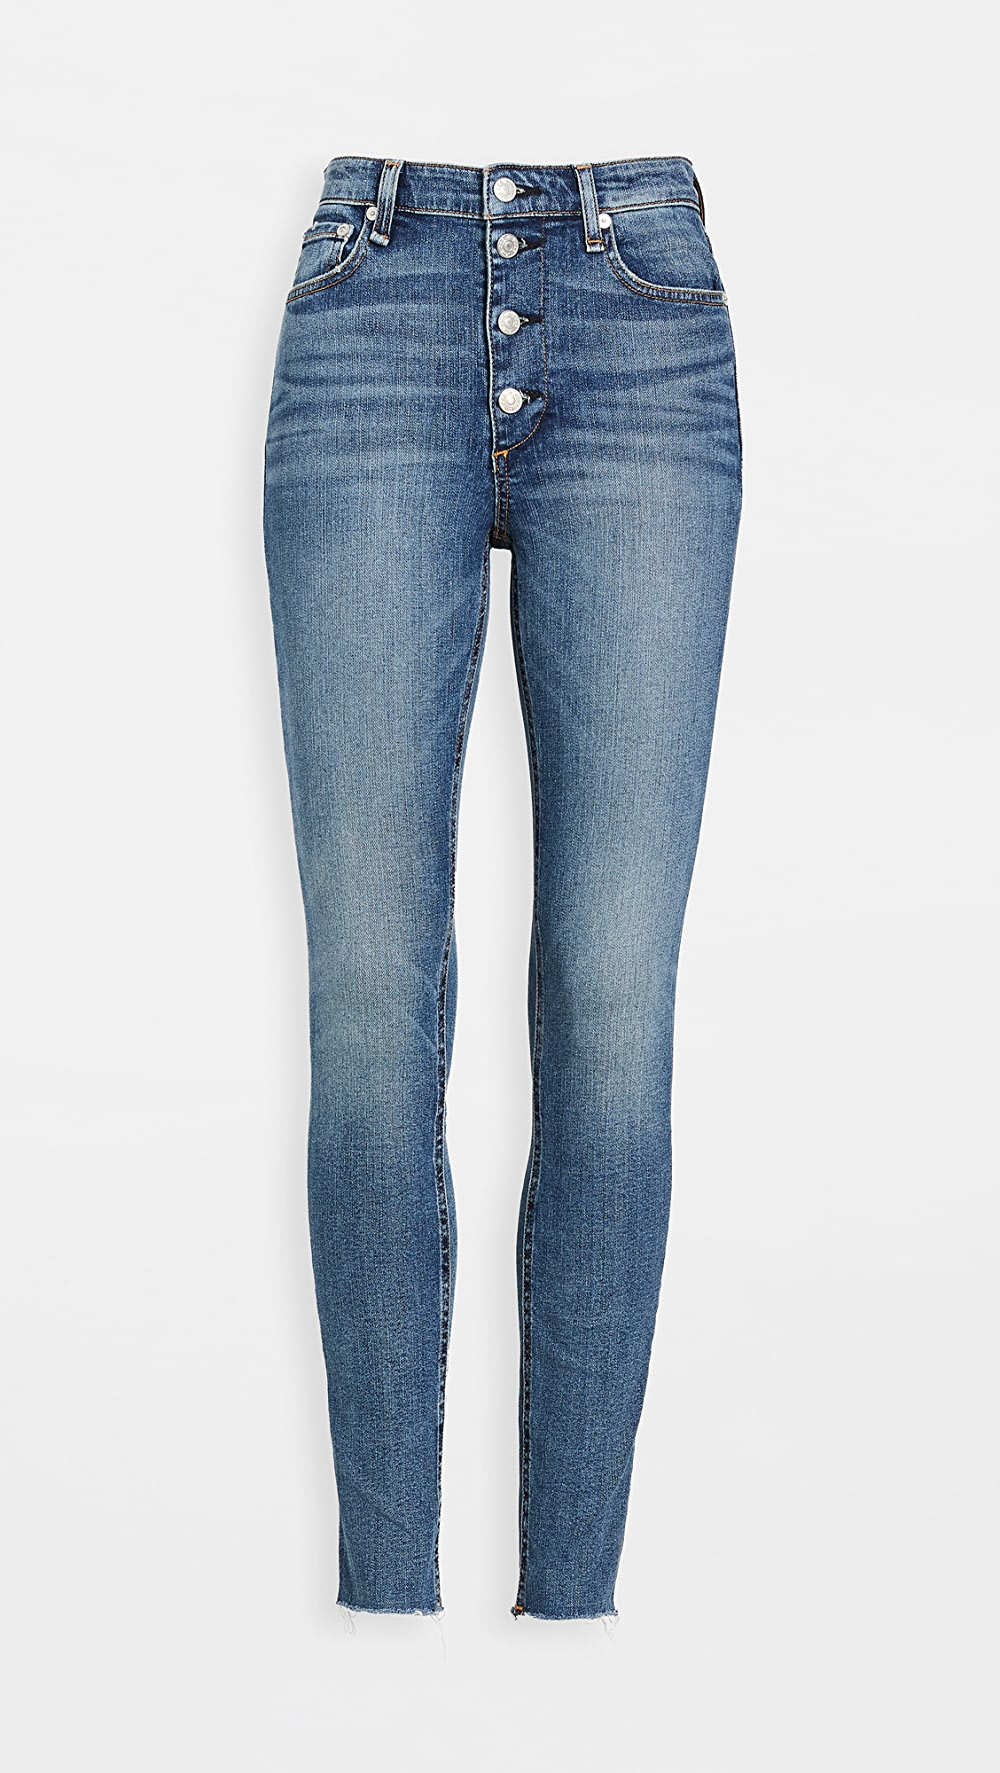 100% Quality Rag & Bone/jean - Nina High-rise Skinny Jeans To Be Renowned Both At Home And Abroad For Exquisite Workmanship, Skillful Knitting And Elegant Design